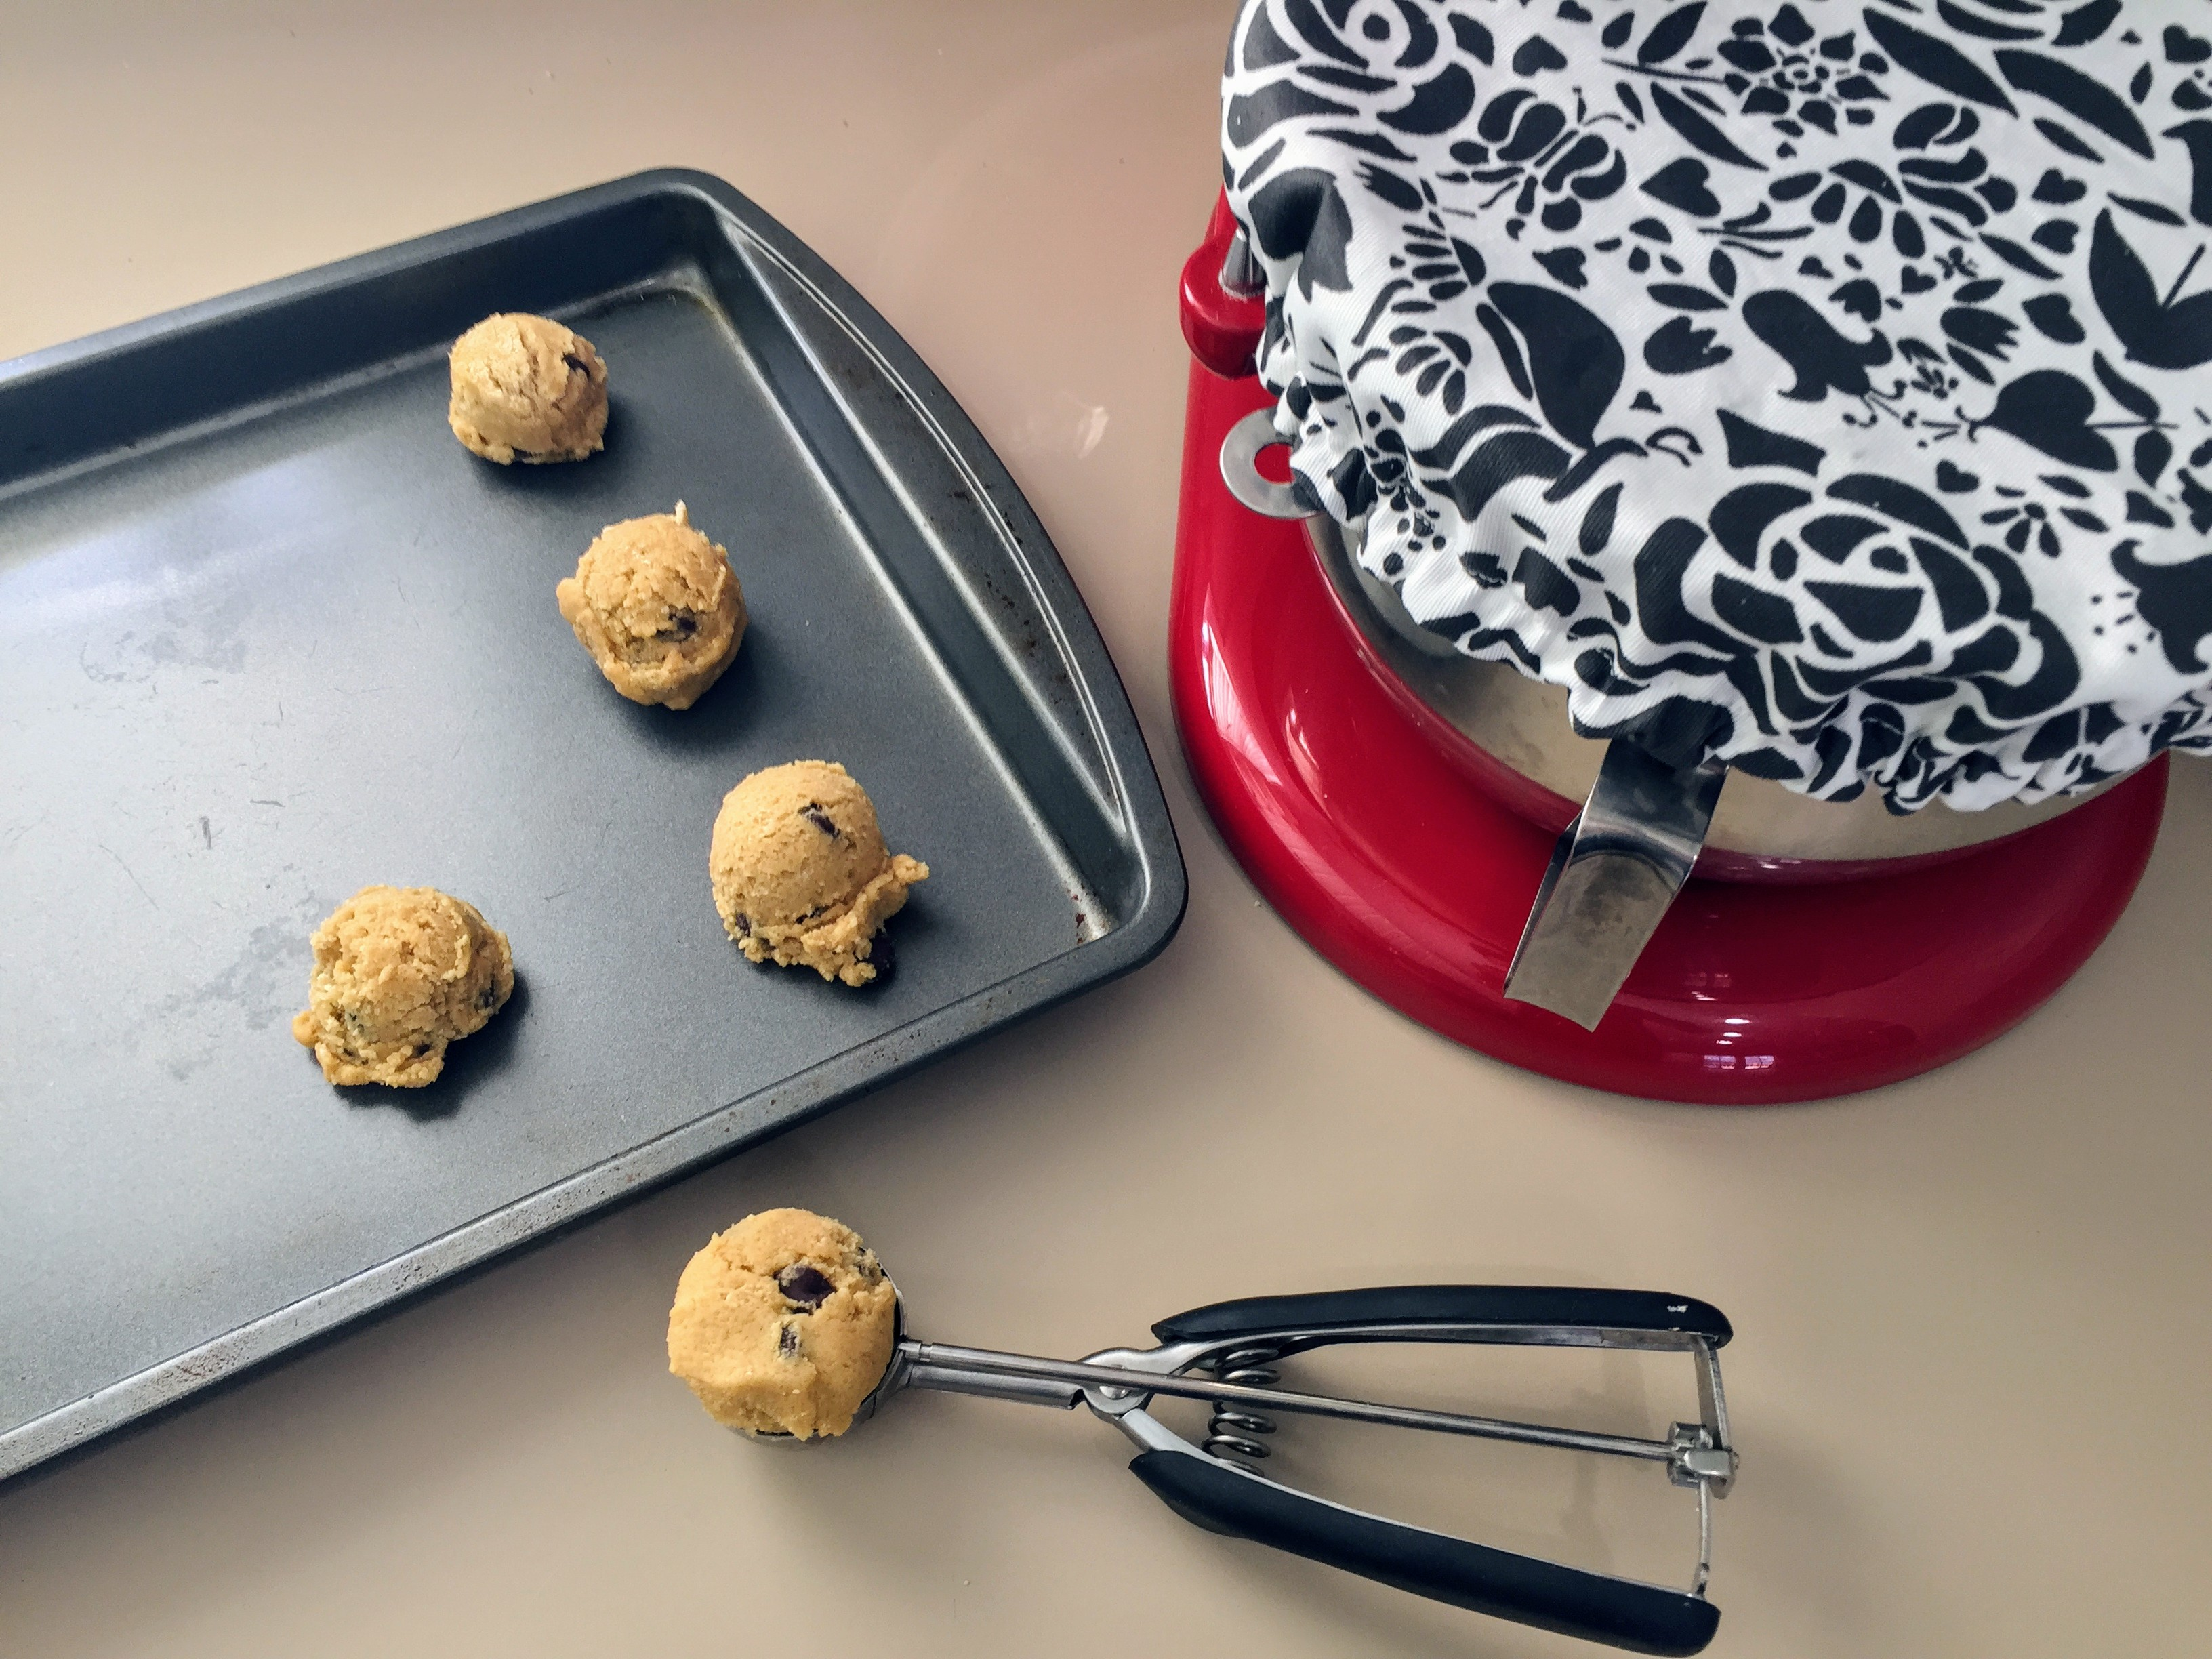 Bowl cover on red Kitchenaid mixer next to cookie dough